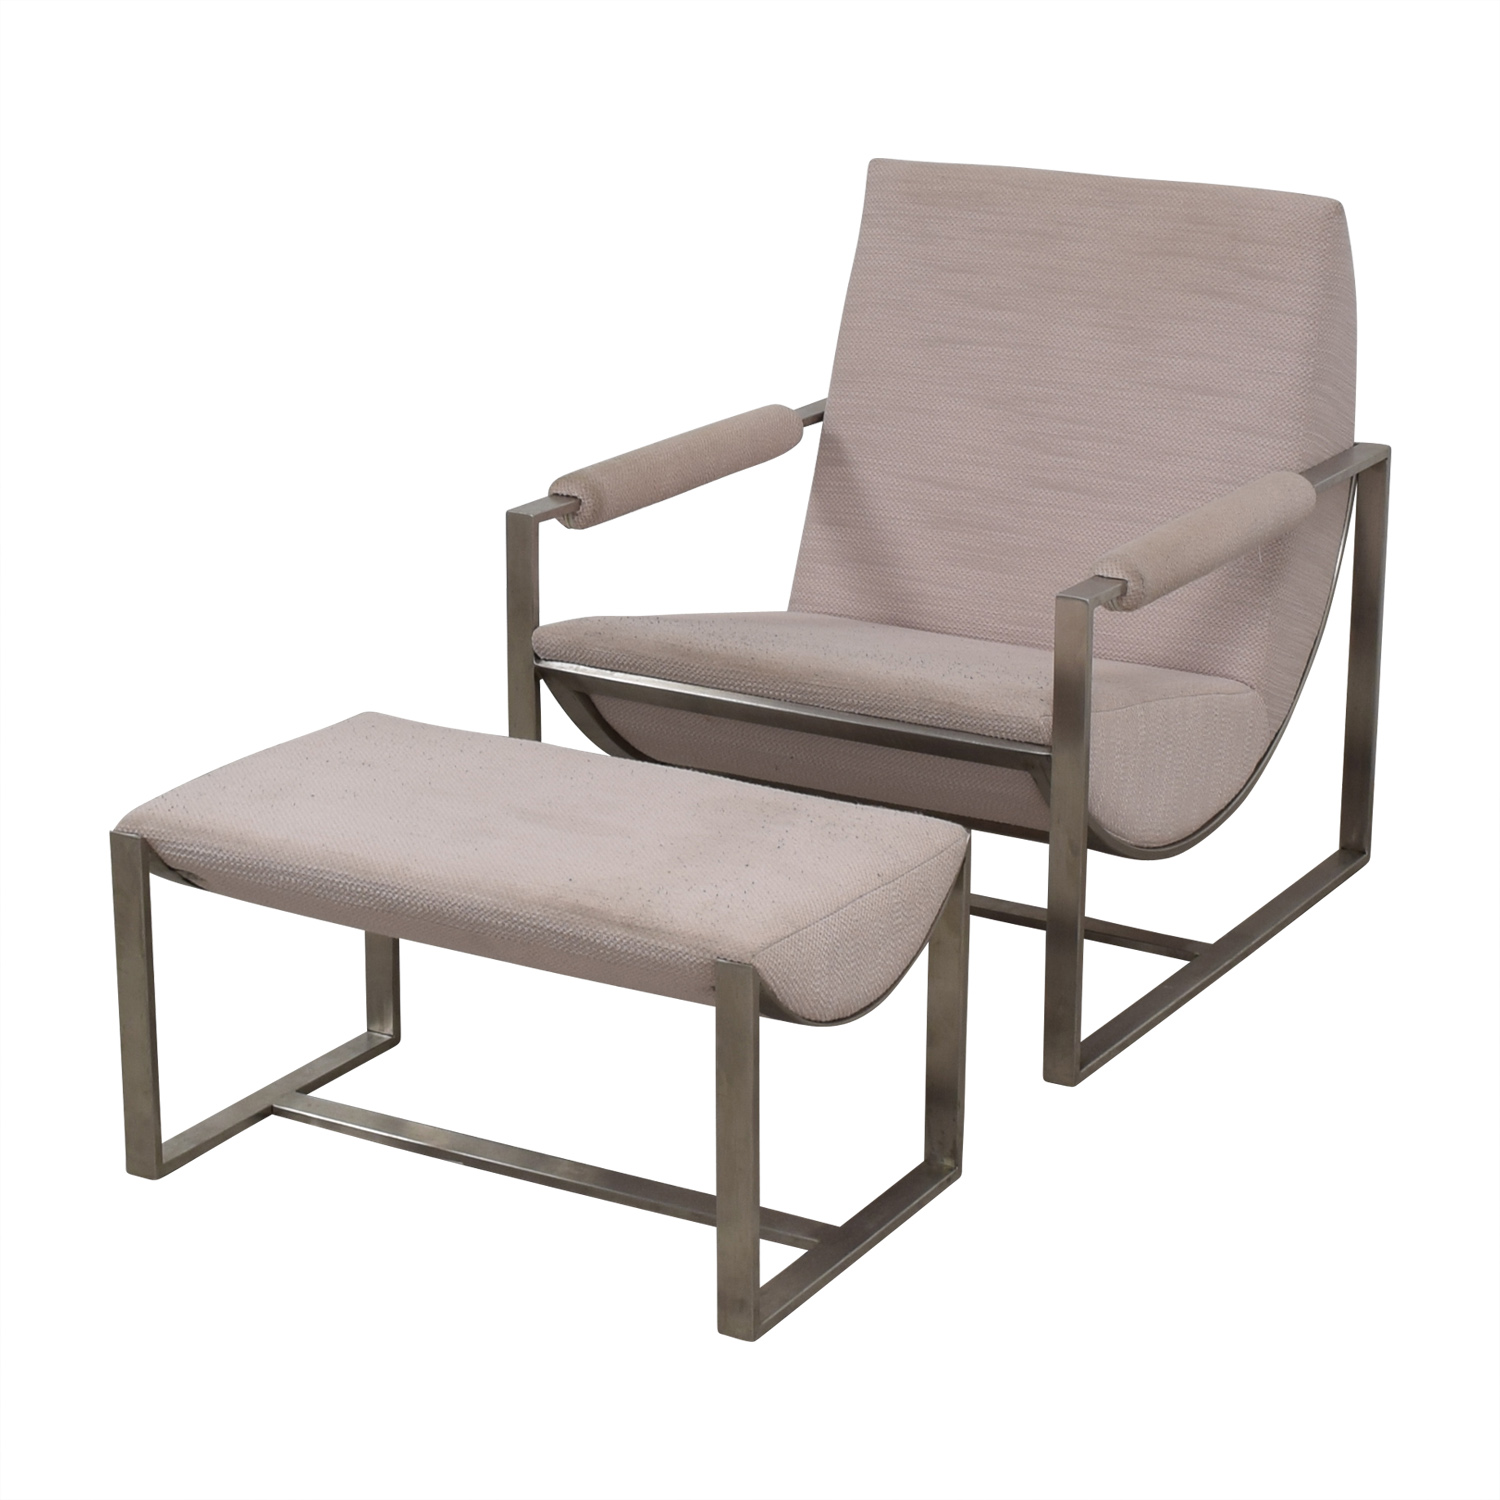 West Elm West Elm Cream Chair and Foot Stool nyc